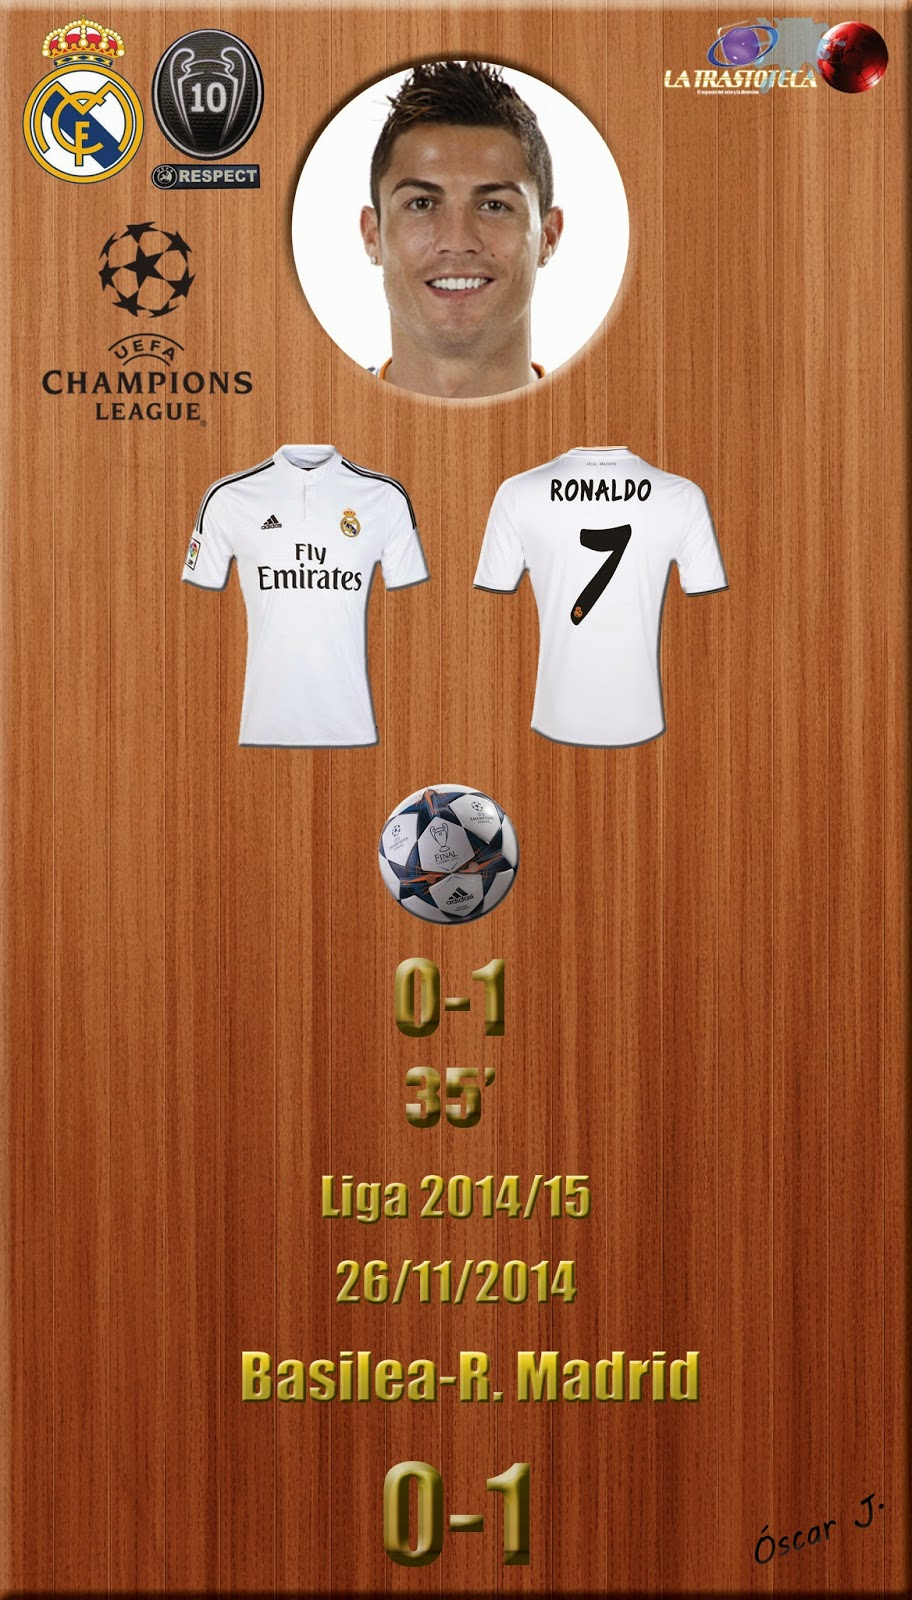 Basilea 0-1 Real Madrid - Champions League  2014/15 - Jornada 5 - (26/11/2014)